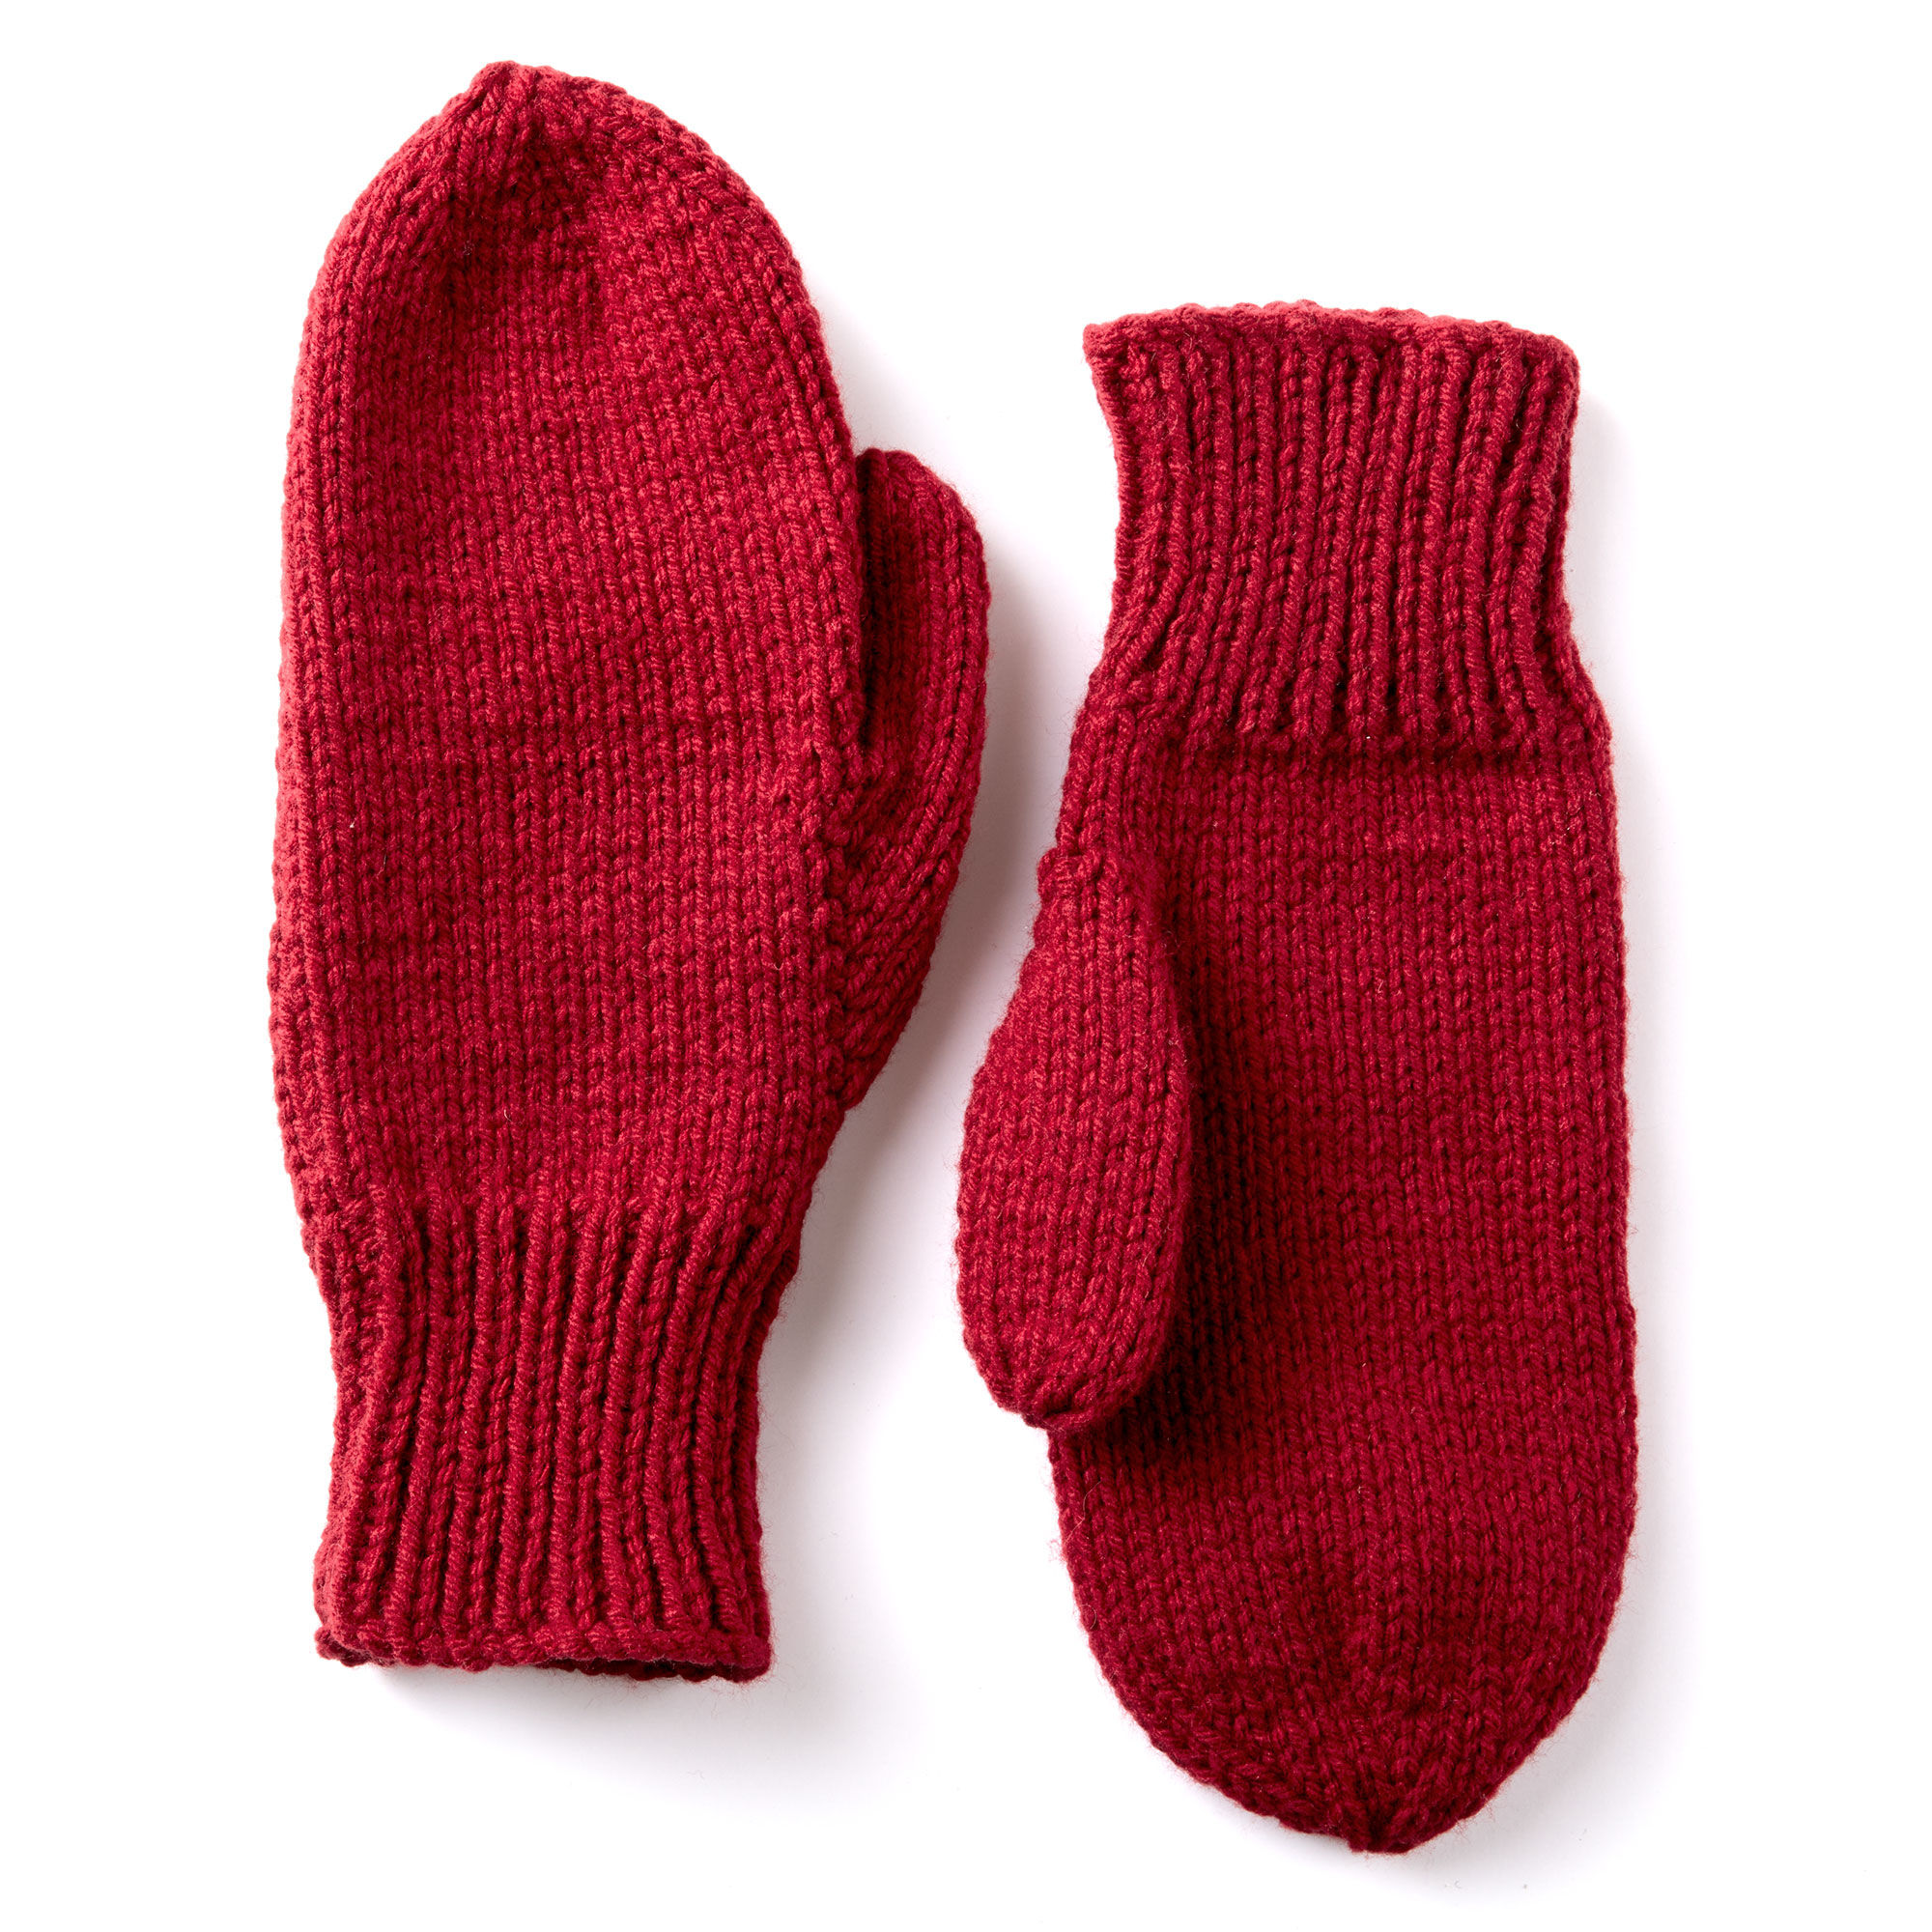 Caron Basic Family Knit Mittens | Yarnspirations